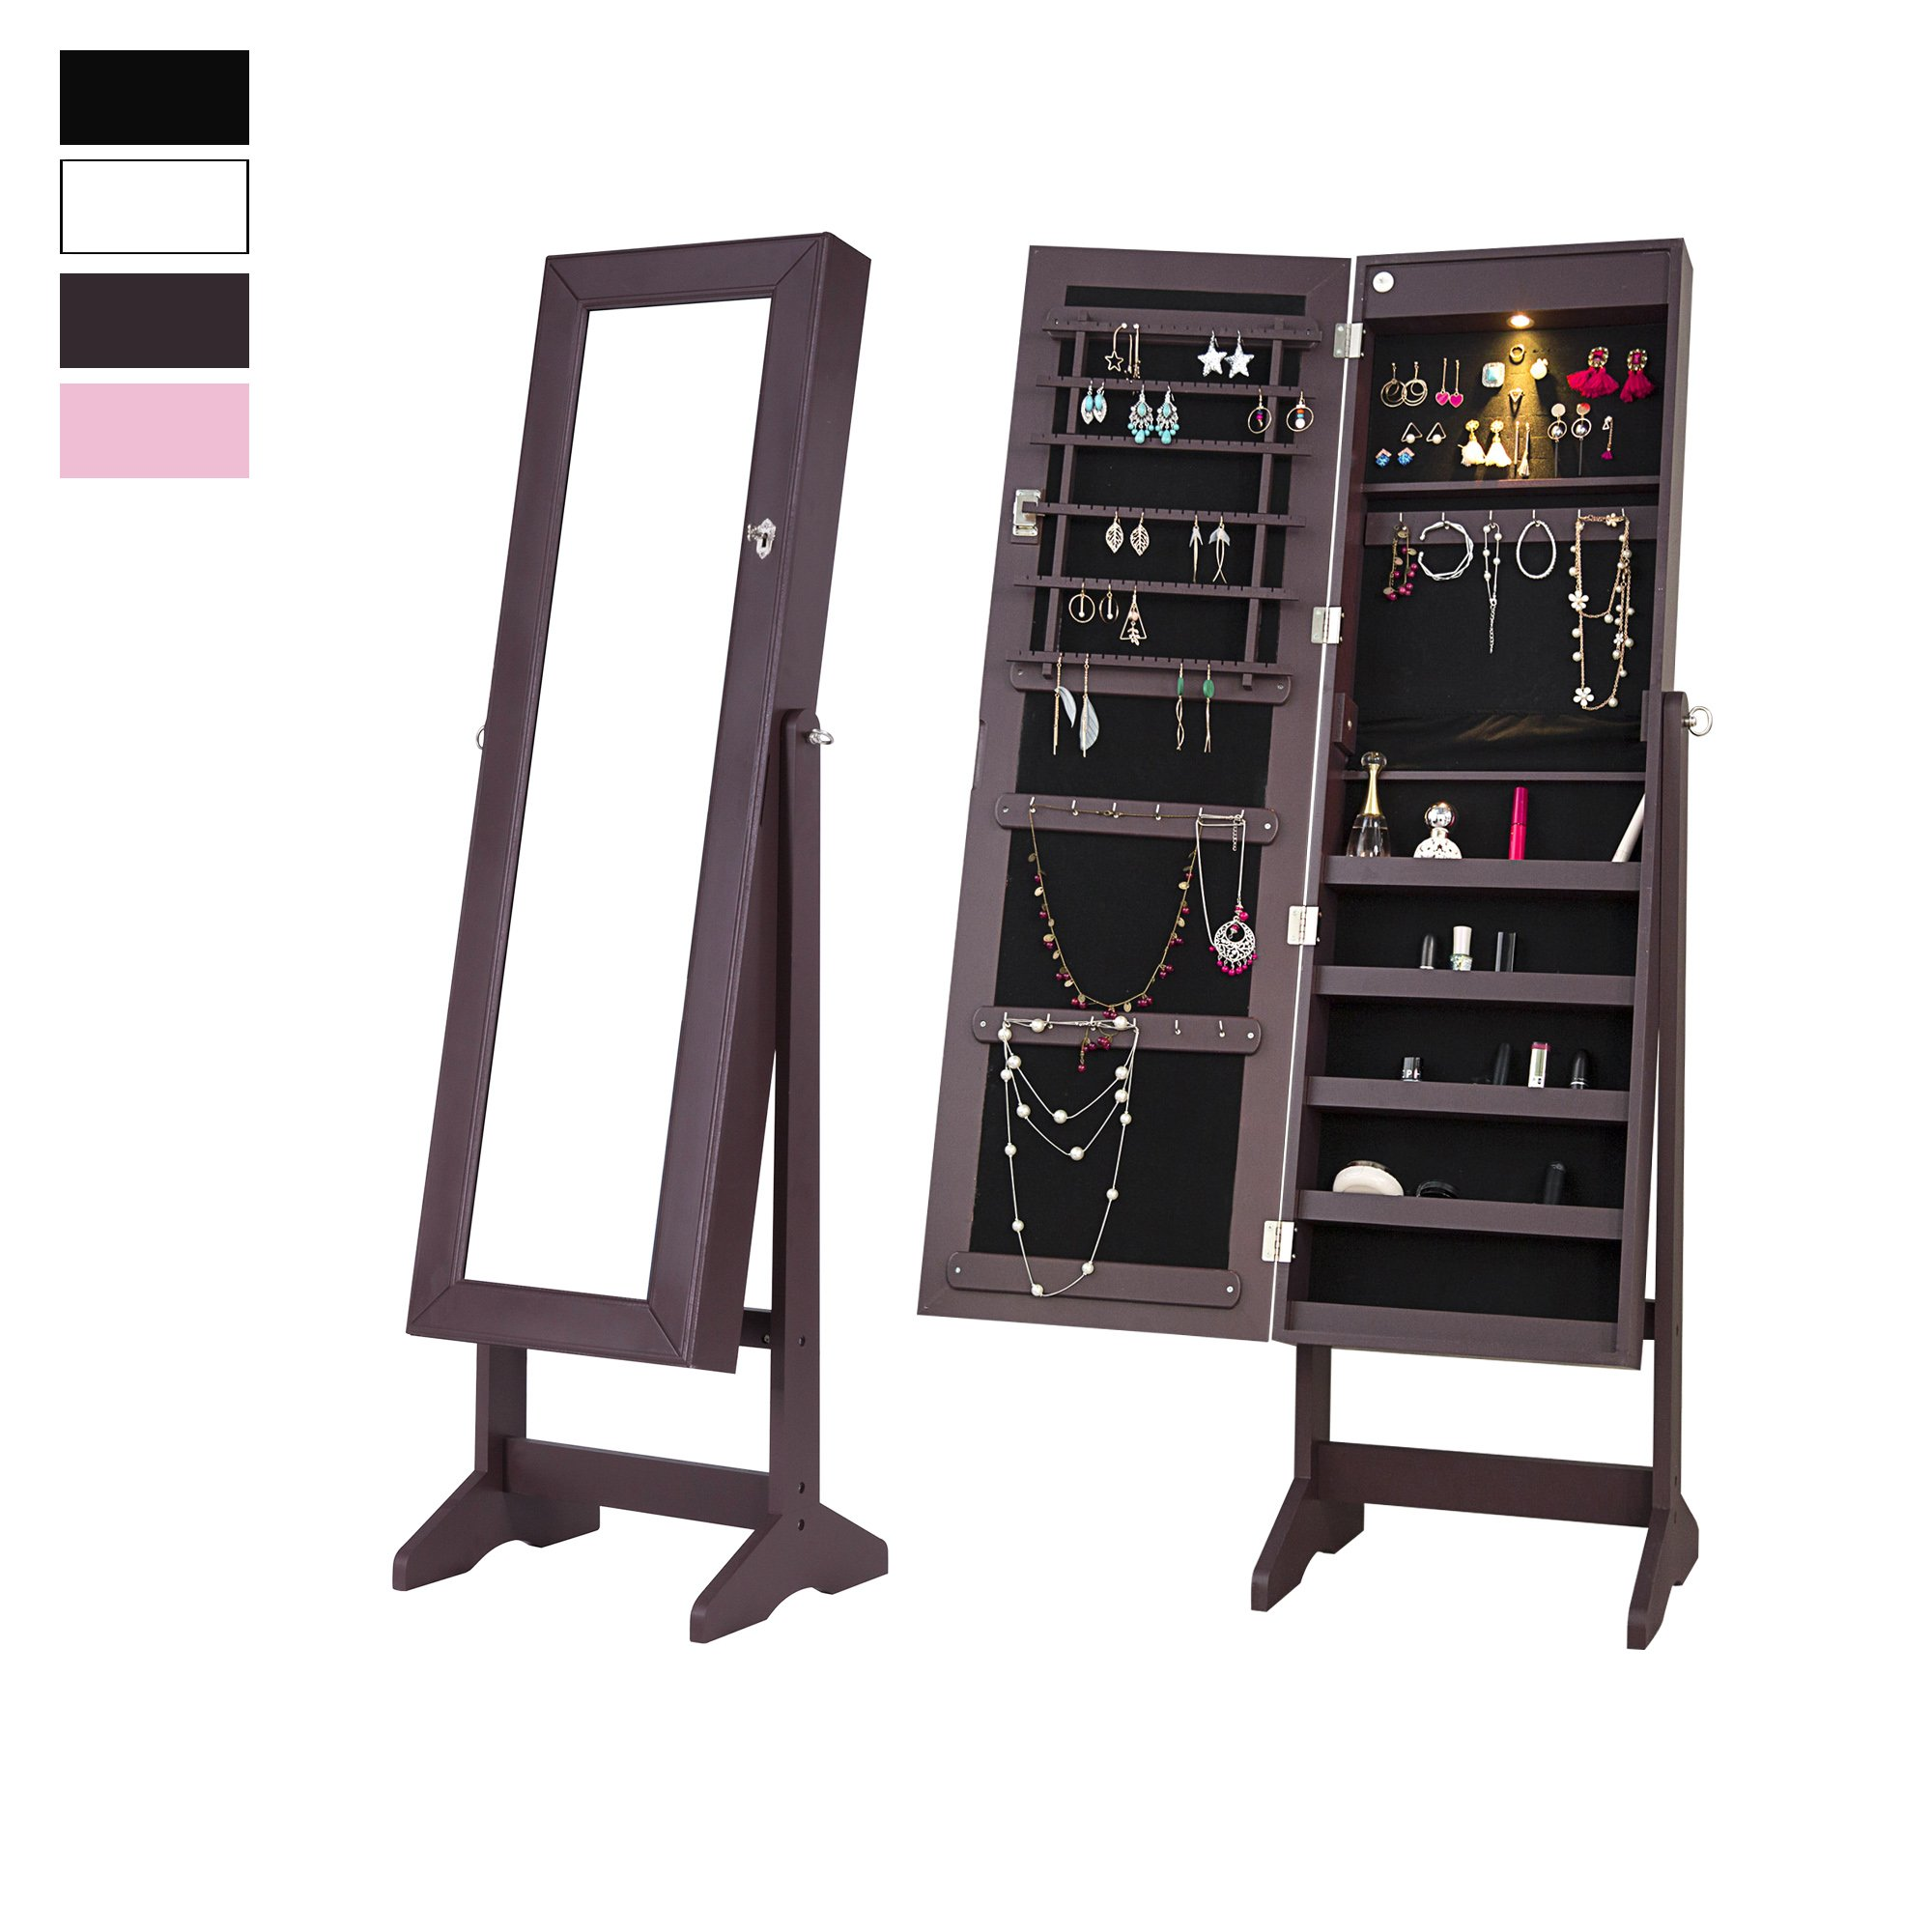 Cloud Mountain Mirrored Jewelry Cabinet Free-Standing Lockable Jewelry Armoire Full Length Floor Tilting Jewelry Organizer with LED Light, 4 Adjustable Angles Storage, Espresso